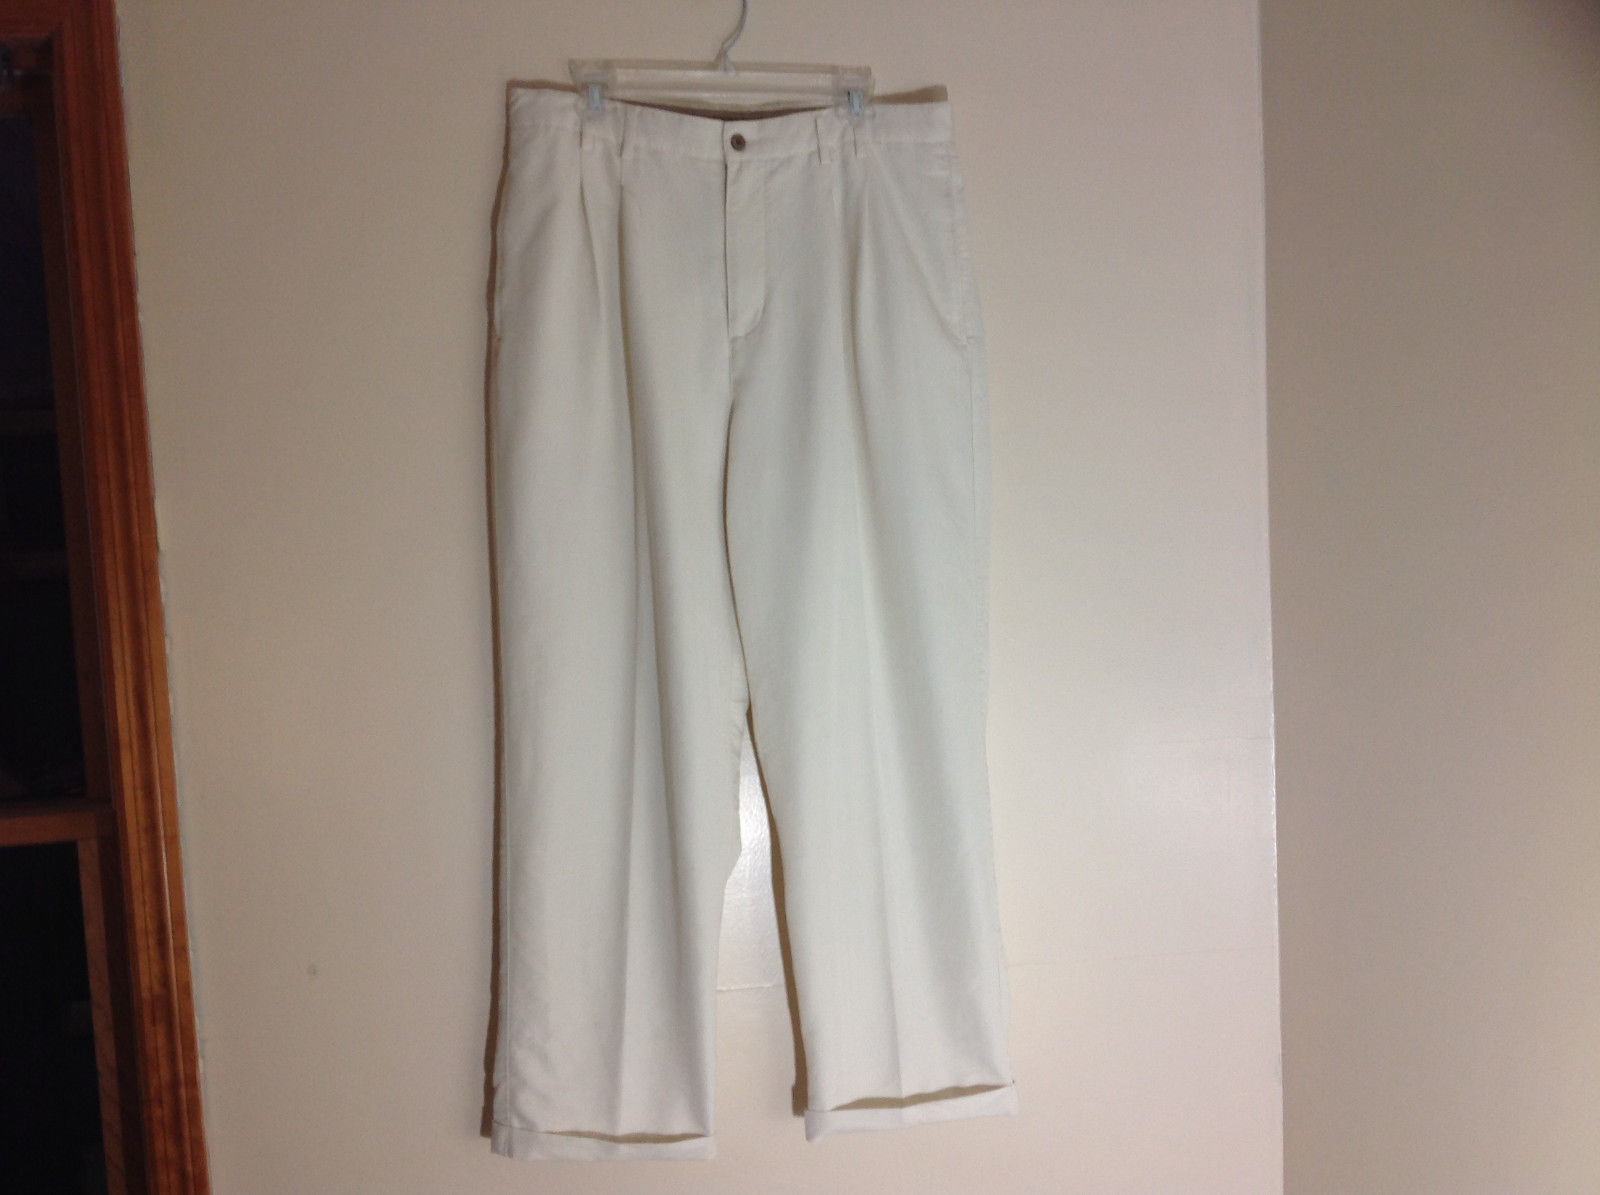 Havana Jack's Cafe White Pleated Dress Pants Cuffs on Pant Legs Size 36 by 30